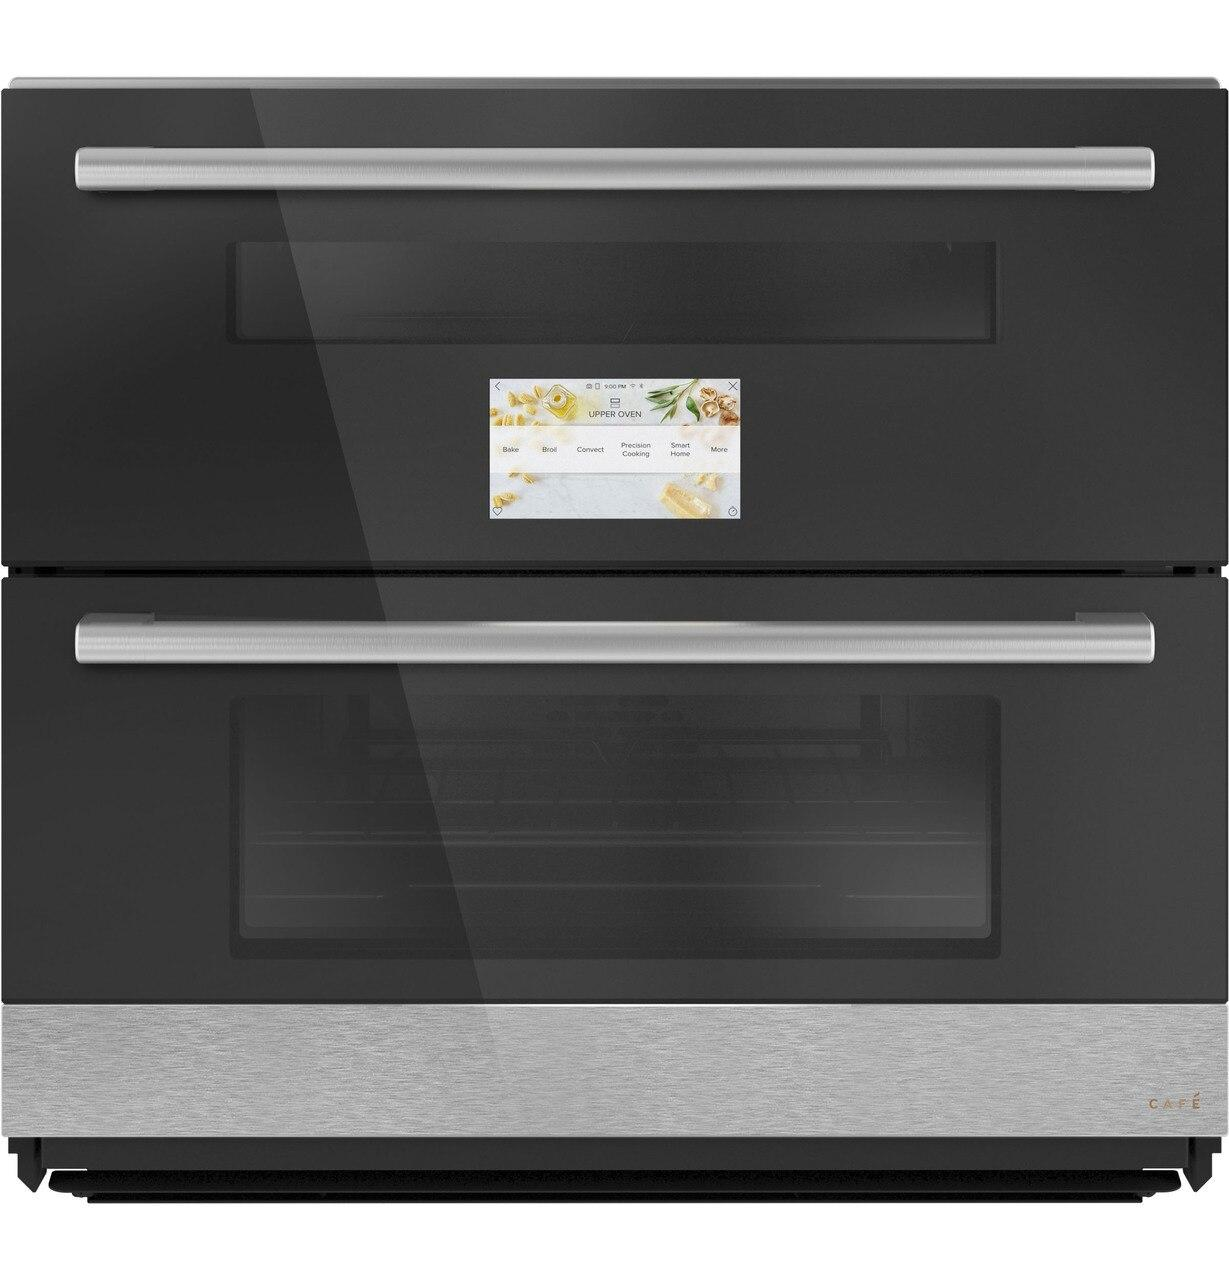 """CafeCafé™ 30"""" Duo Smart Single Wall Oven In Platinum Glass"""